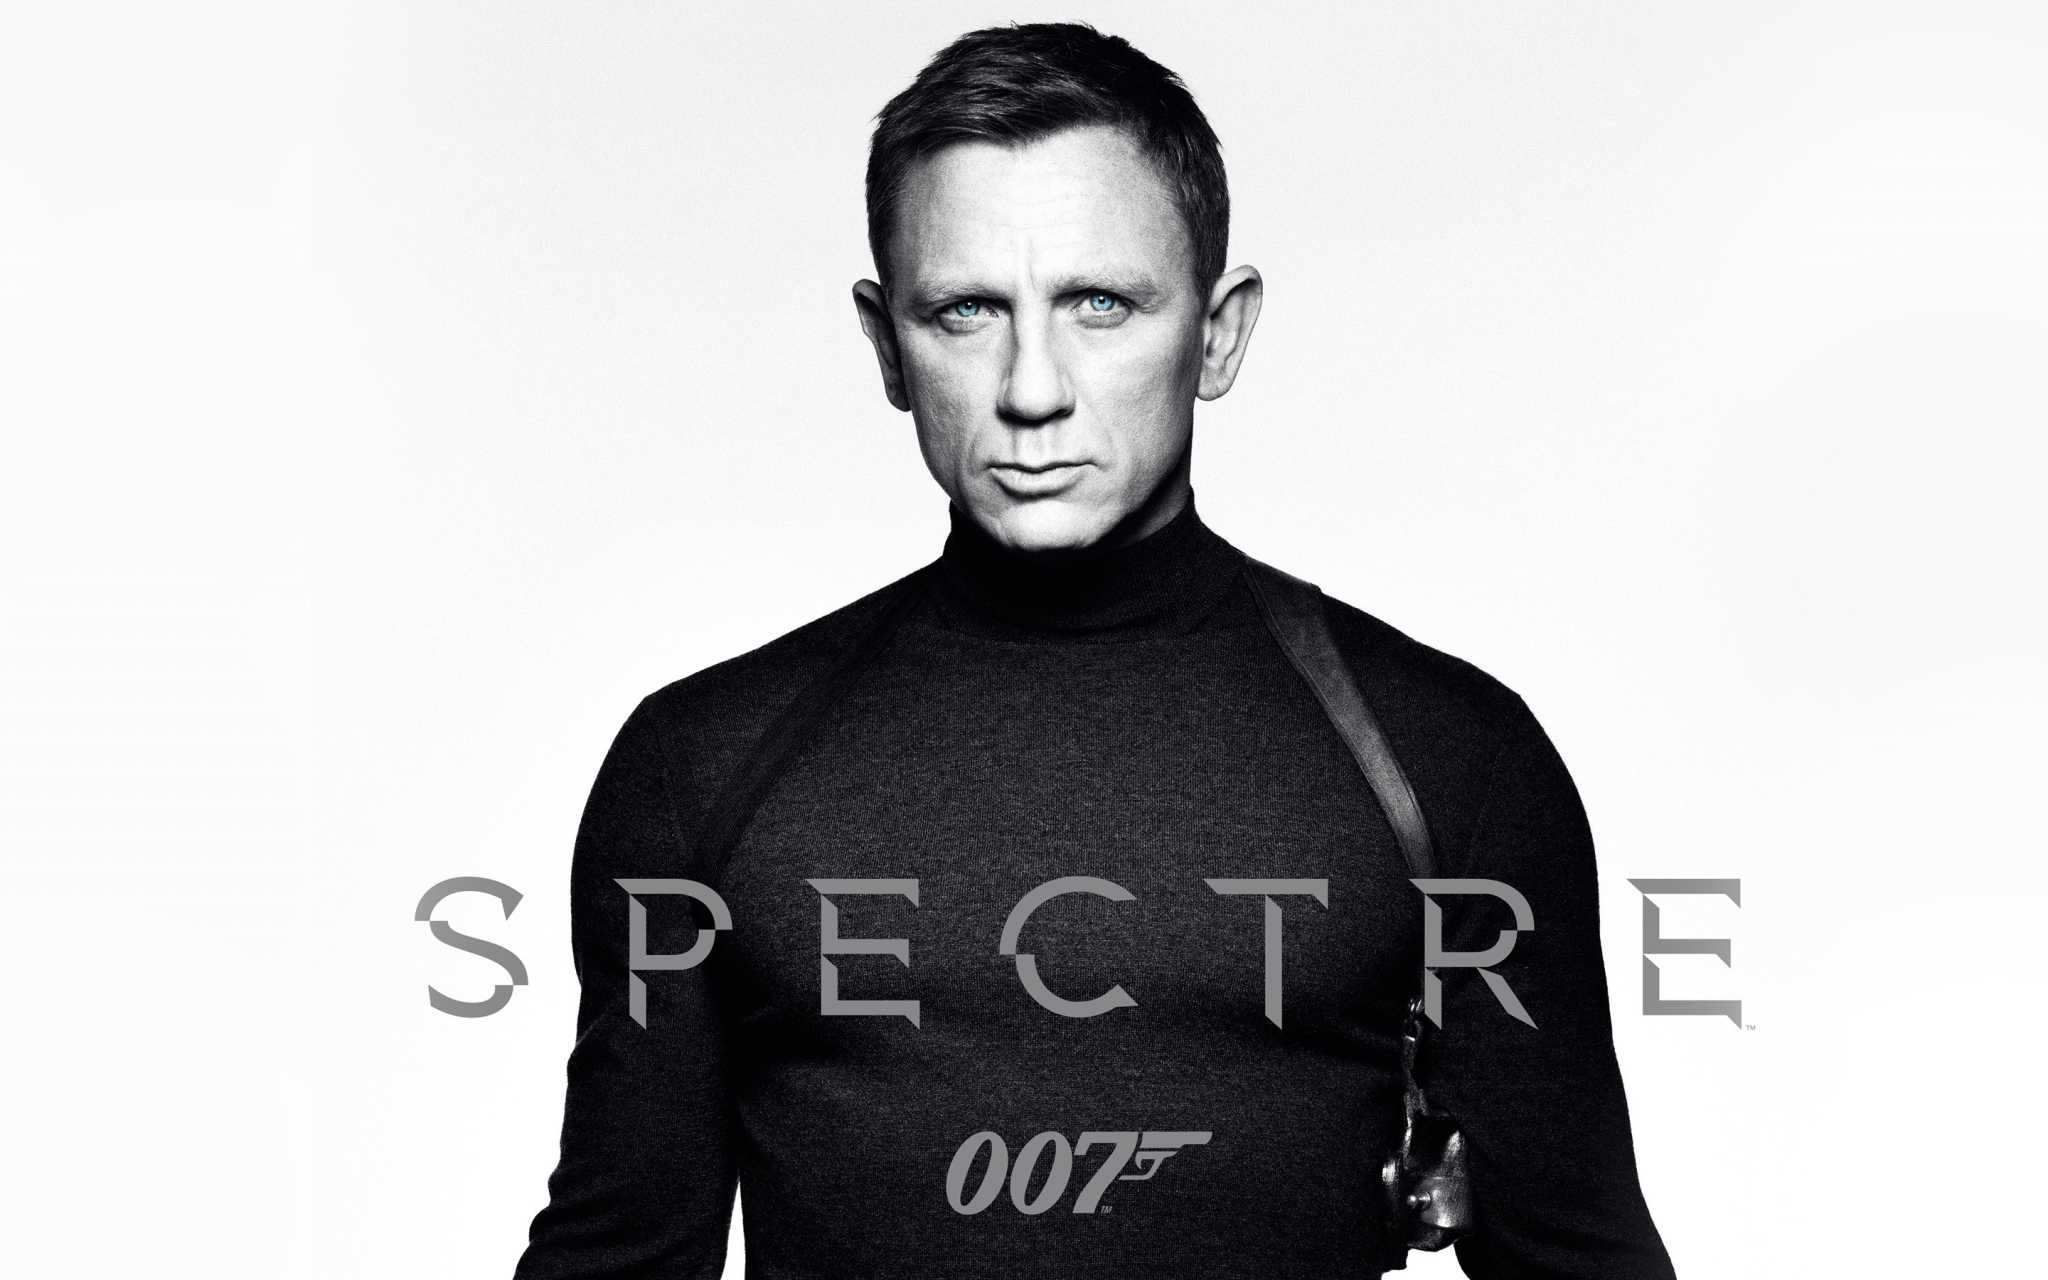 Spectre 007 movies HD Wallpapers download